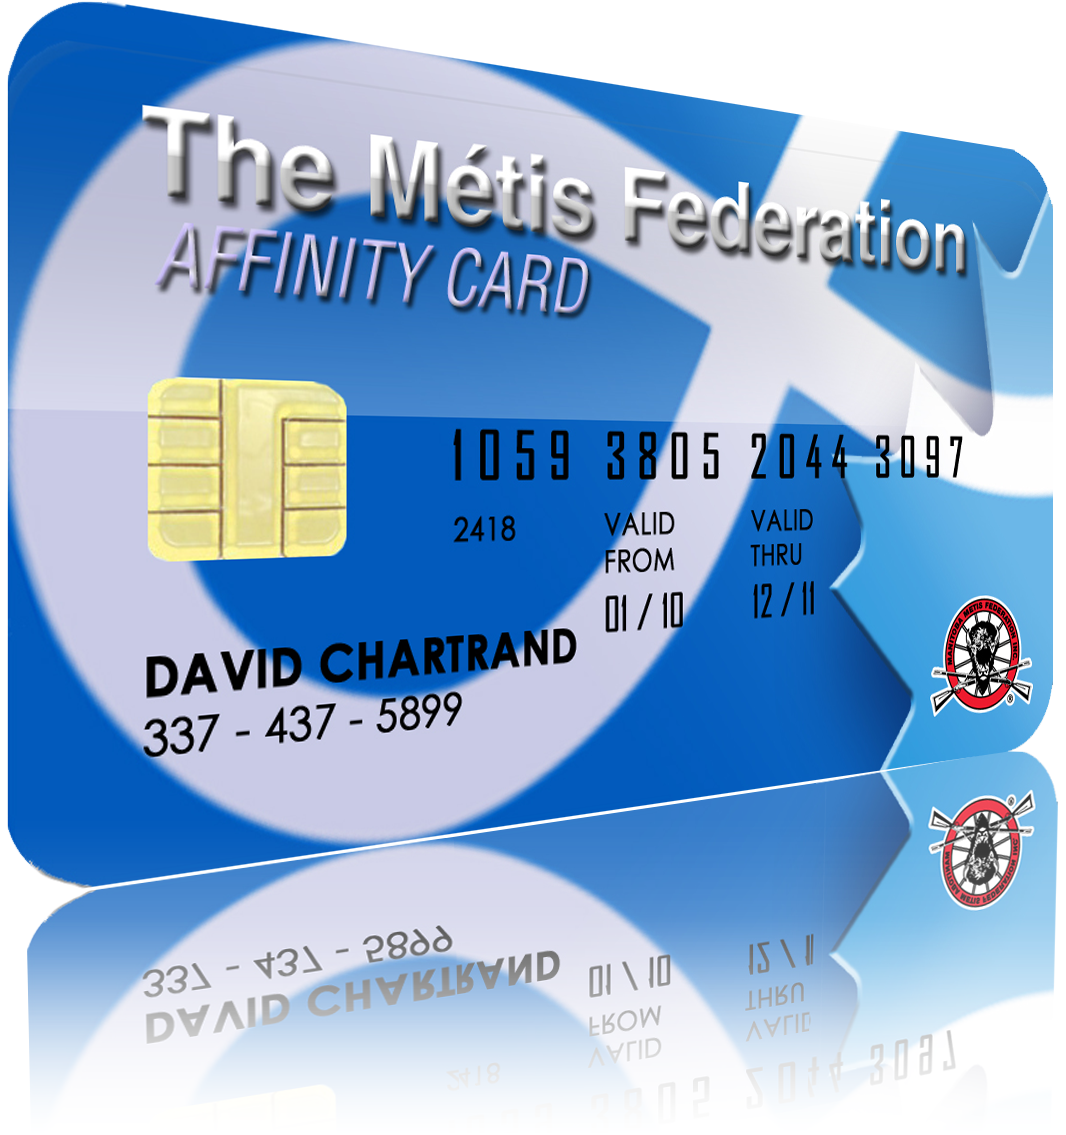 case study affinity credit cards With credit or debit cards, the value chain for network-branded prepaid cards is generally more complex, that is, because a number of additional, independent firms play distinct roles in designing, distributing, and supporting a prepaid card program.